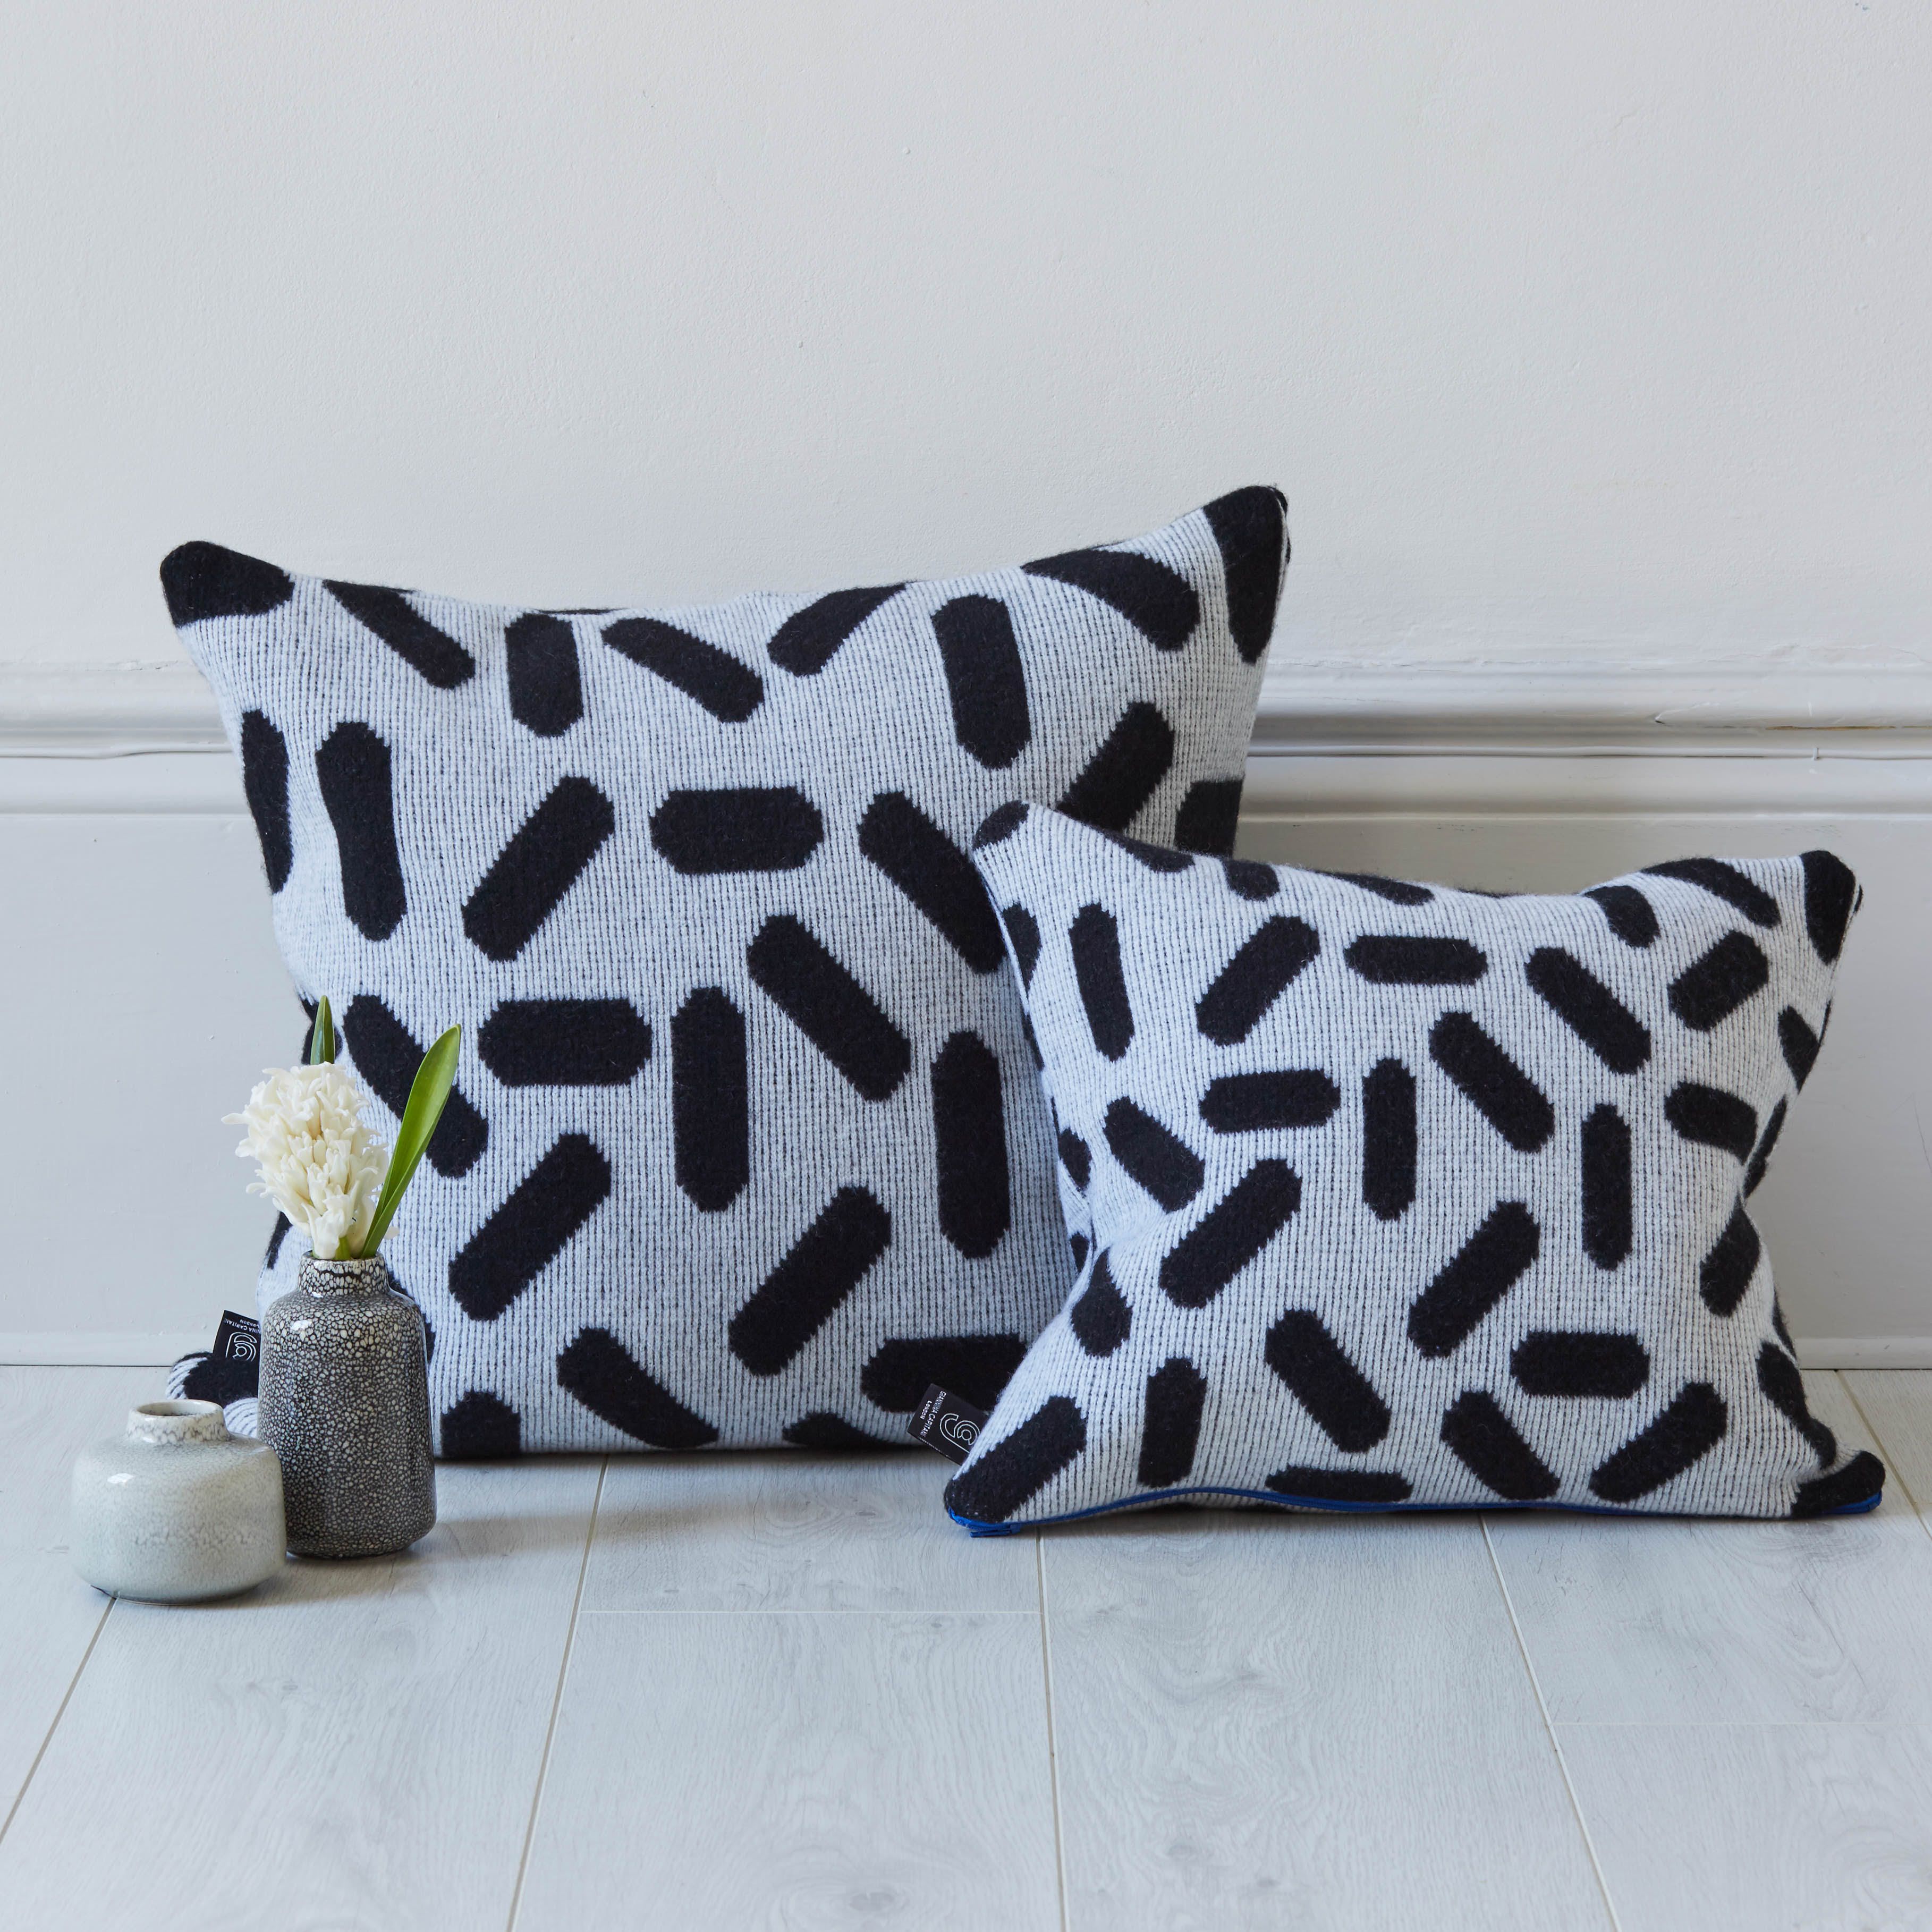 TIC-TAC CUSHION IN WHITE AND BLACK